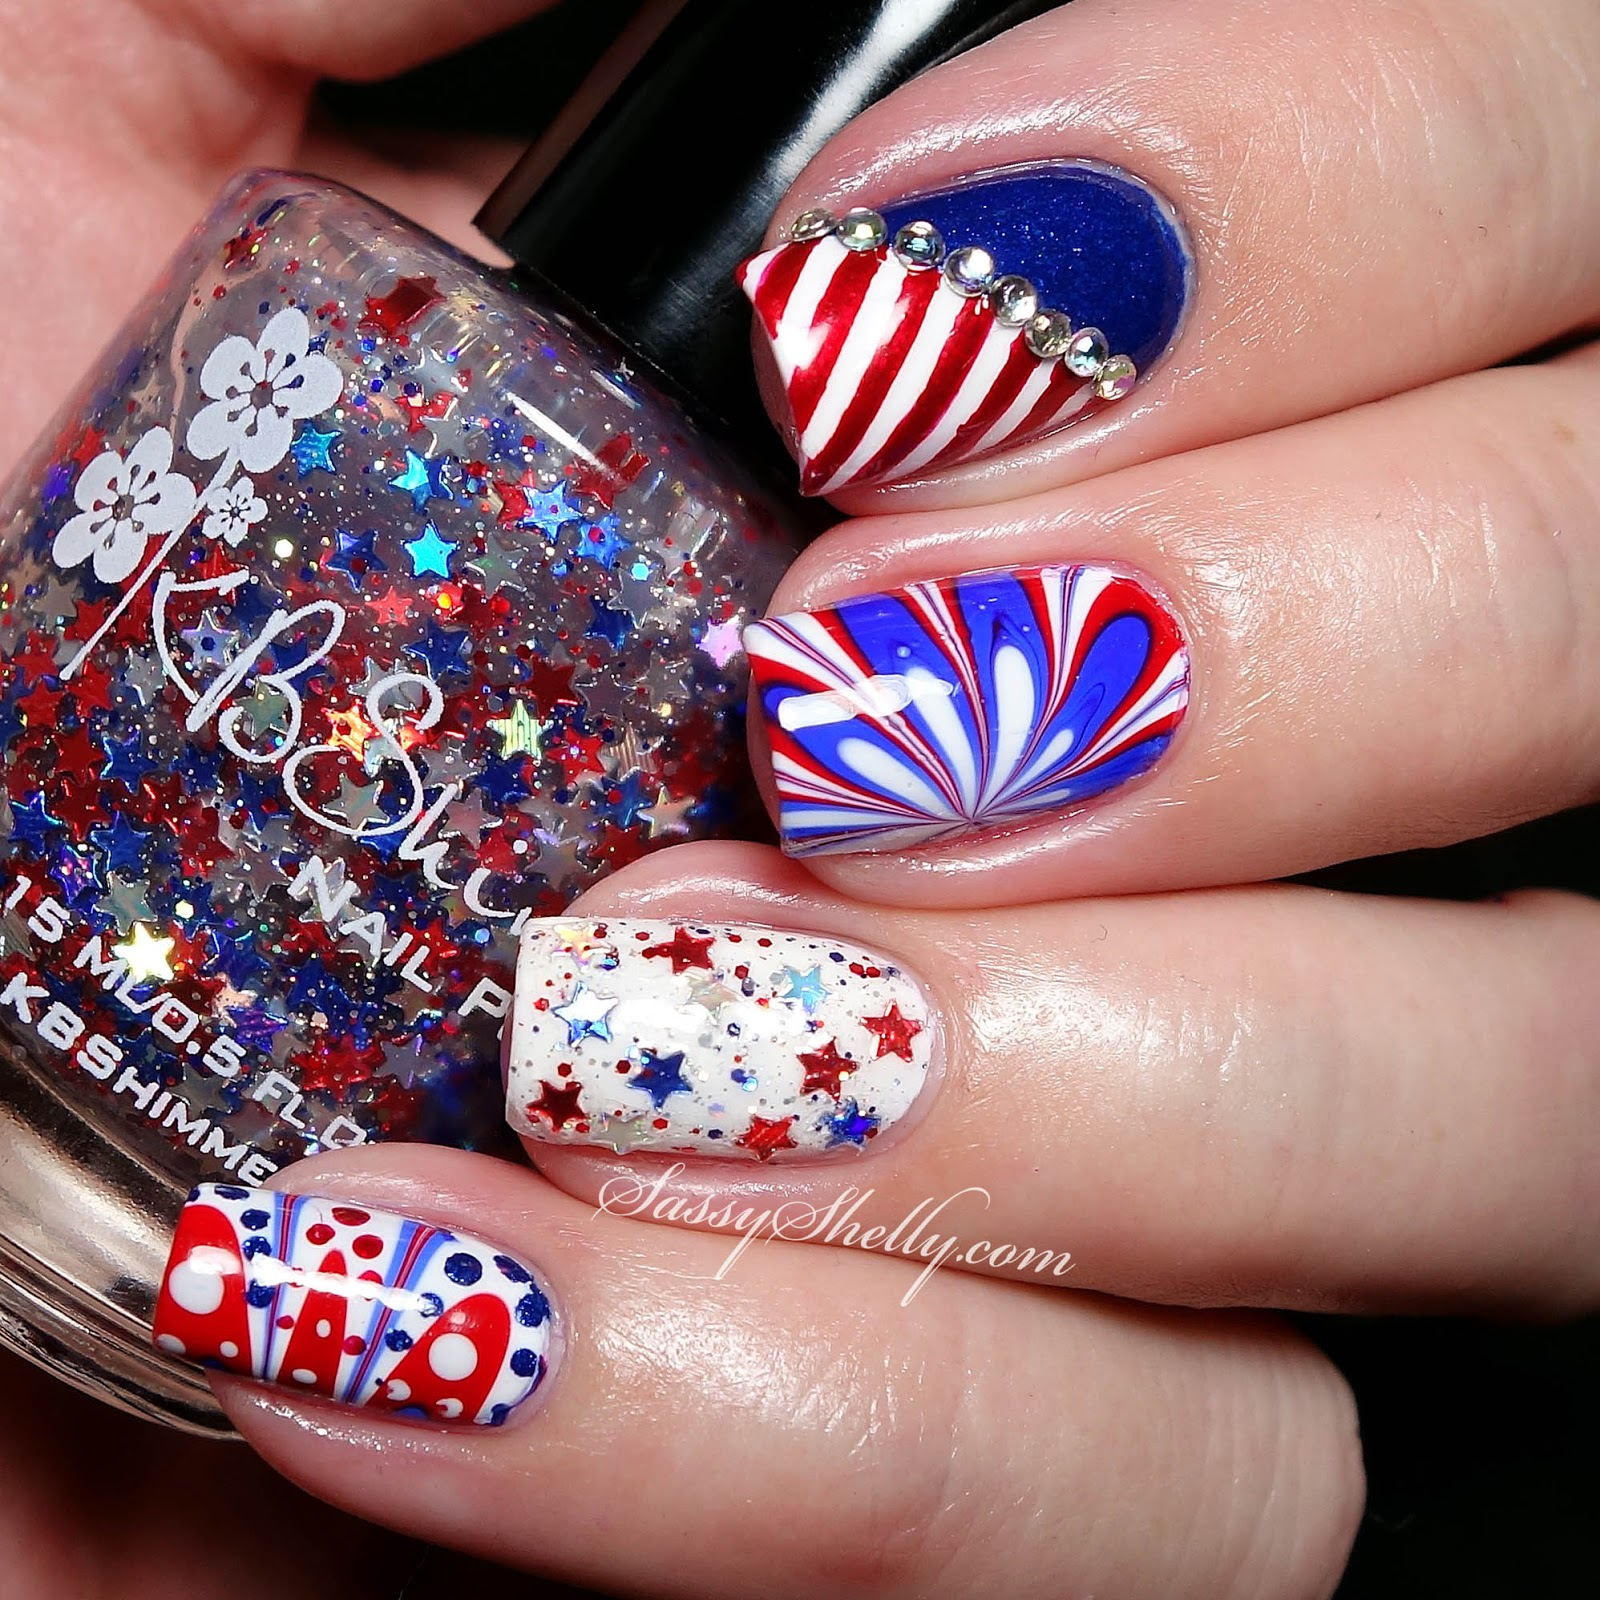 Awesome-4th-Of-July-Nail-Art-Designs-Ideas 21 Awesome 4th Of July Patriotic Day Nail Design Ideas 21 Awesome 4th Of July Patriotic Day Nail Design Ideas Awesome 4th Of July Nail Art Designs Ideas3